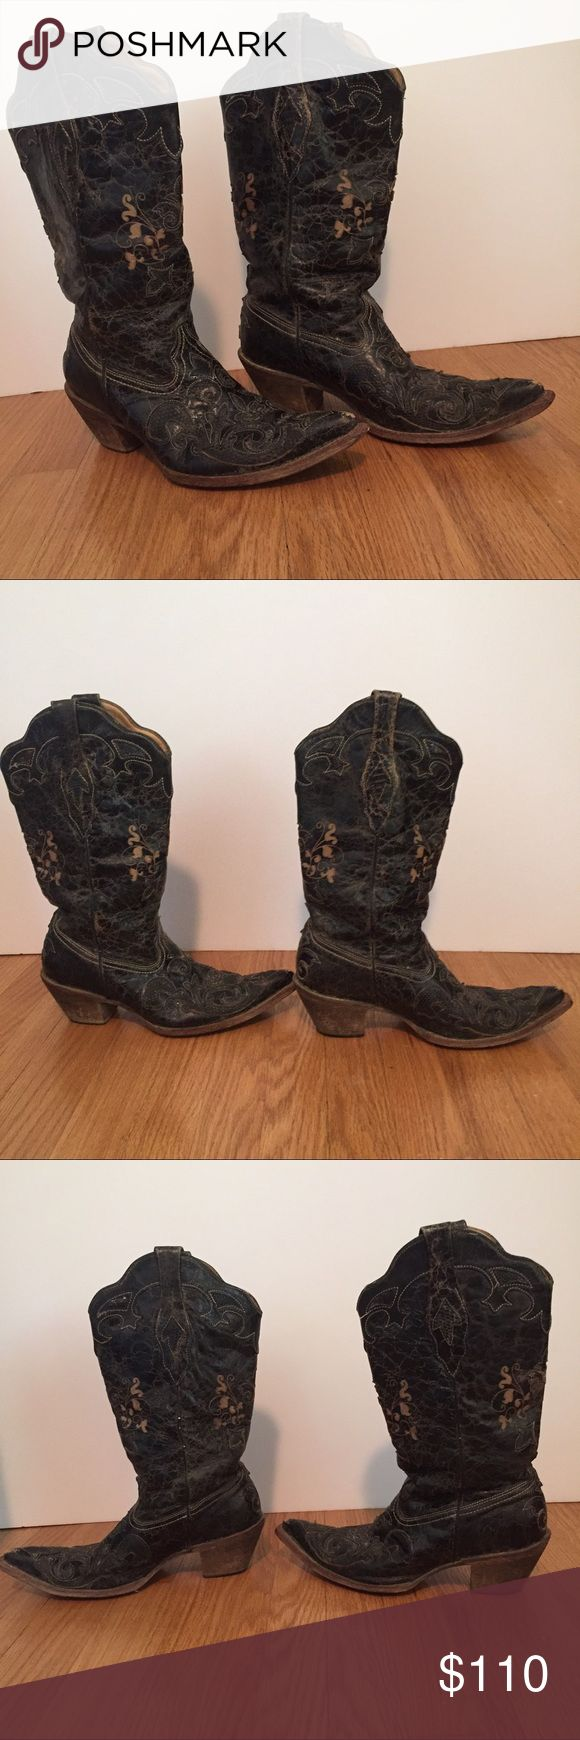 Corral Boots Cowboy Boot Vintage Look Distressed Corral Boots 	•	Size 9.5 M 	•	lizard overlay model C2108 	•	Black leather with tan accents 	•	Intentional distressed look 	•	These boots do show some light wear (scuffs at toes,etc); please enlarge photos to see full condition 	•	Interior and exterior are clean Corral Shoes